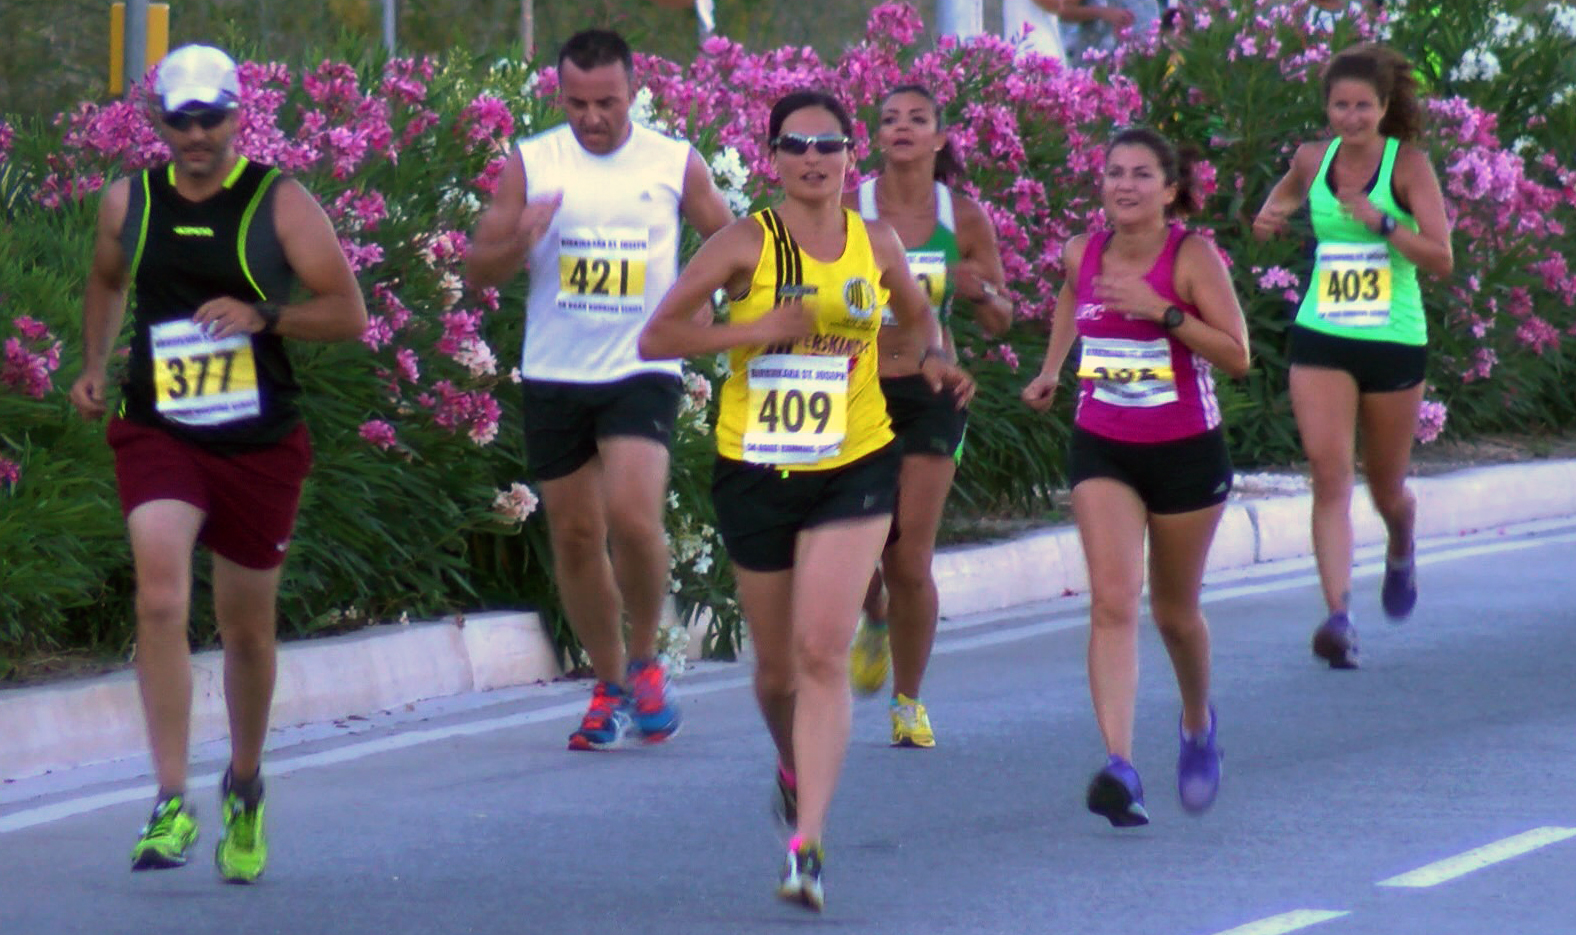 Taking part in a 5 km race 6 months after starting DNRS  PHOTO BY BIRKIRKARA ST. JOSEPH SPORTS CLUB/MULTISPORT